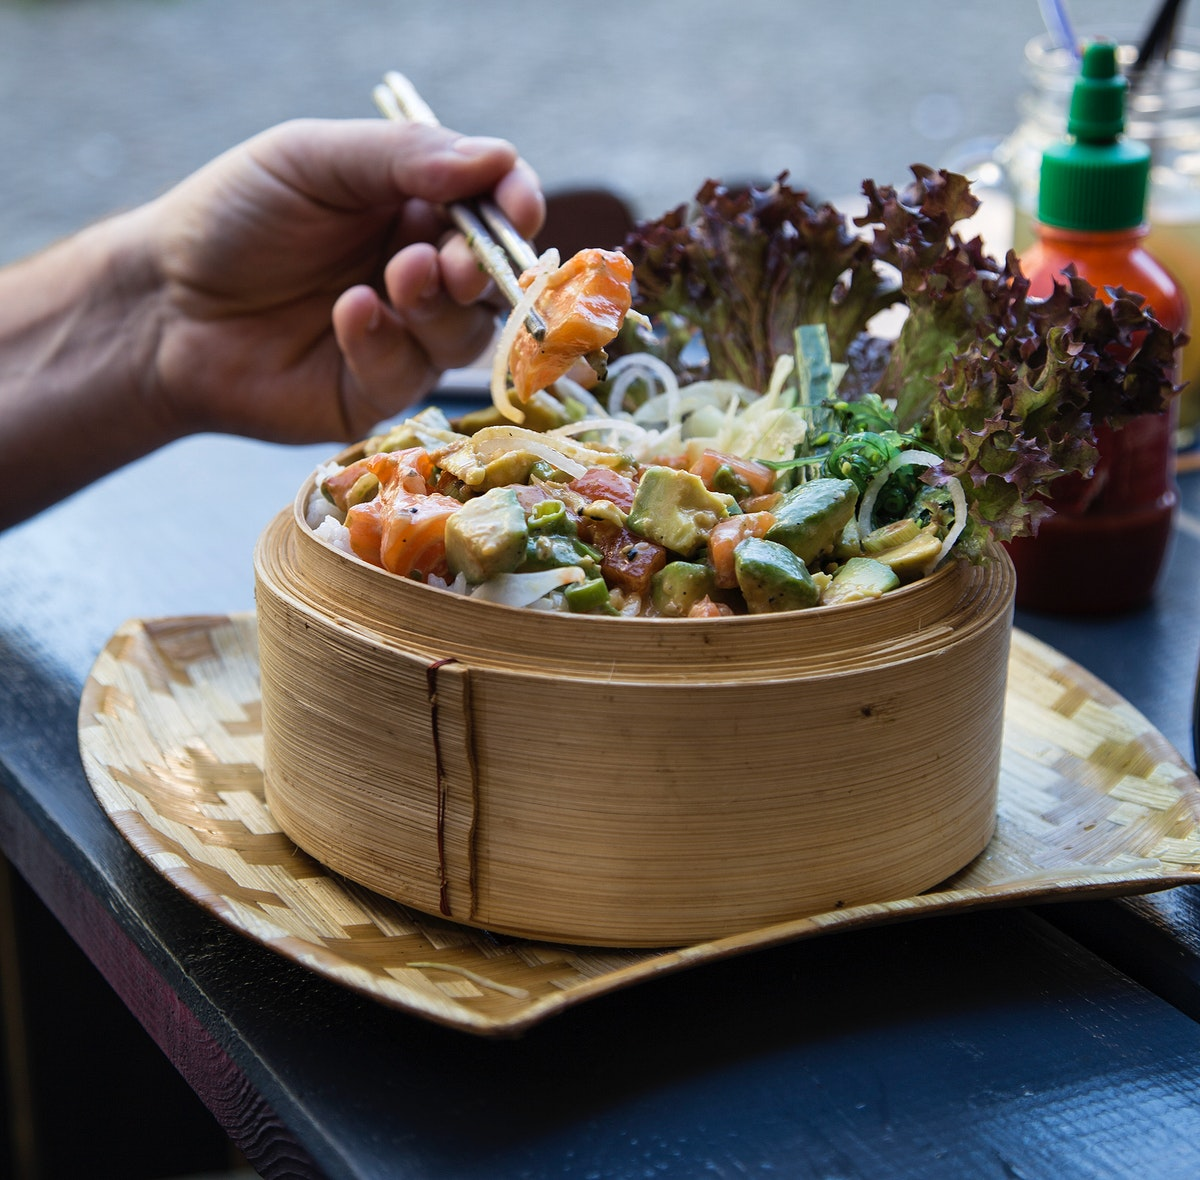 Eating a colorful Asian salad in a bamboo steamer